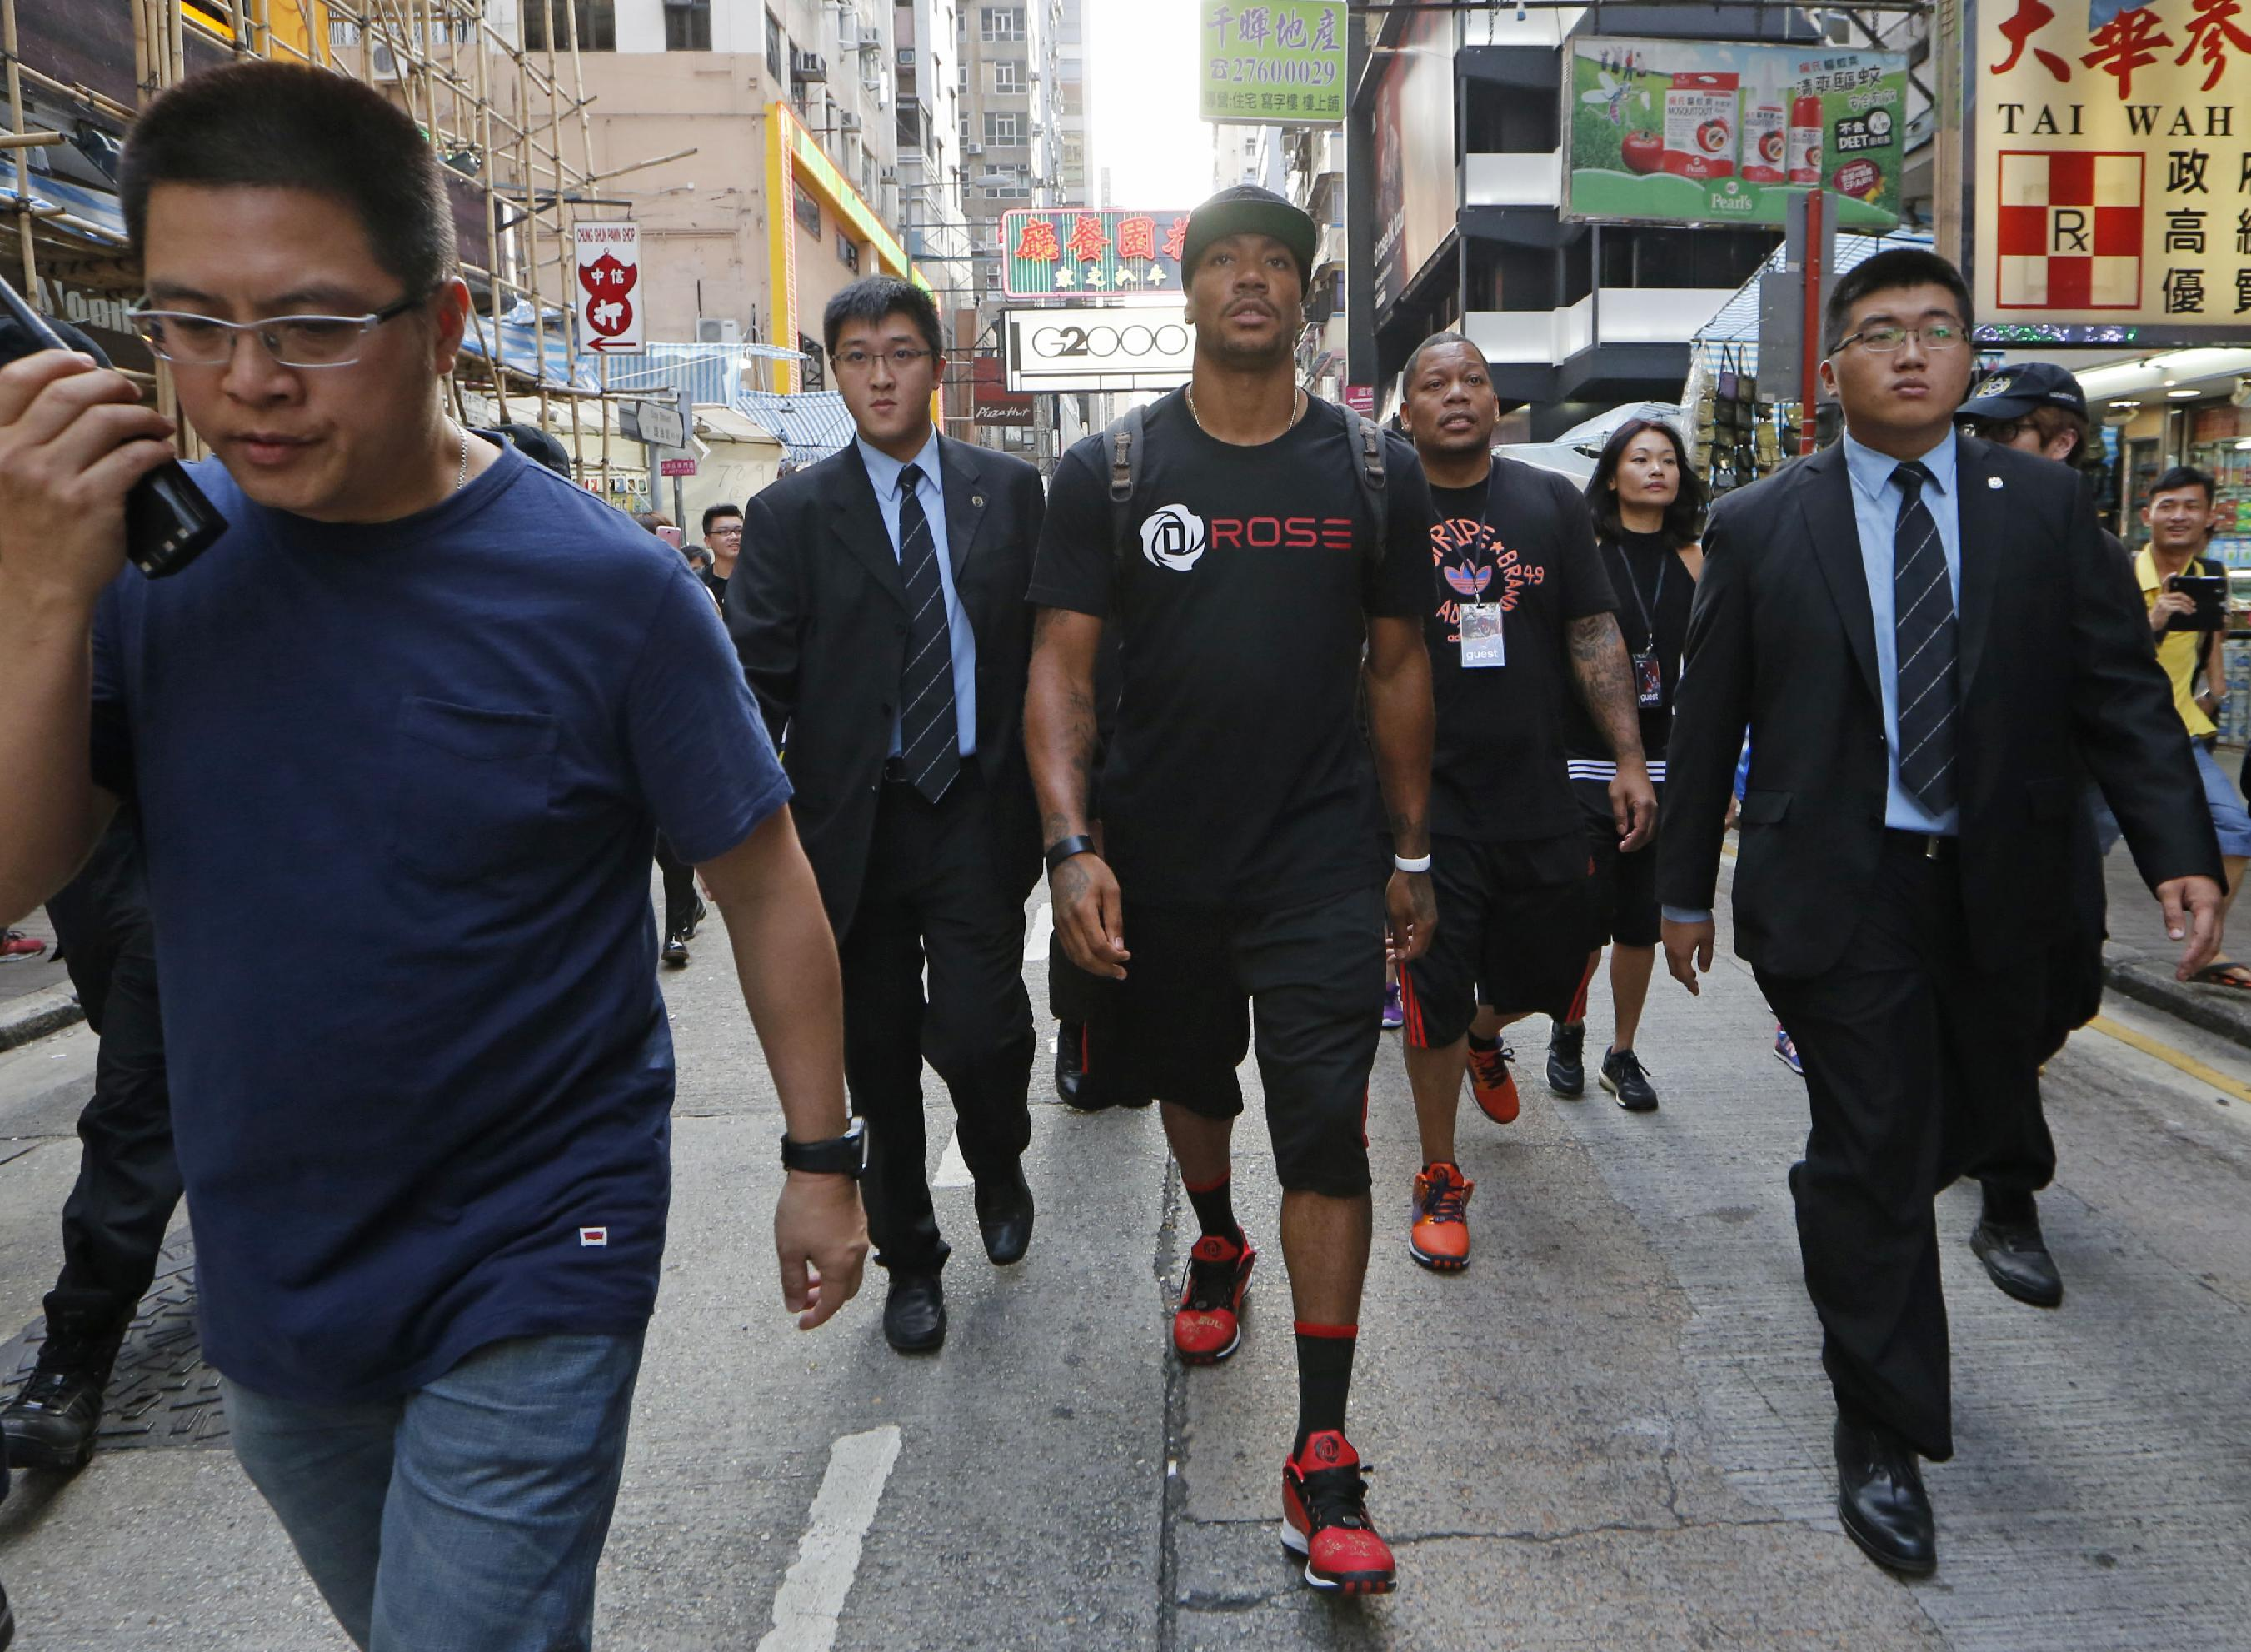 NBA star Derrick Rose of Chicago Bulls, center, walks in a shopping district in Hong Kong after attending a promotional event as part of his Asia tour Friday, Sept. 13, 2013. Rose will visit Manila, the Philippines after touring Hong Kong